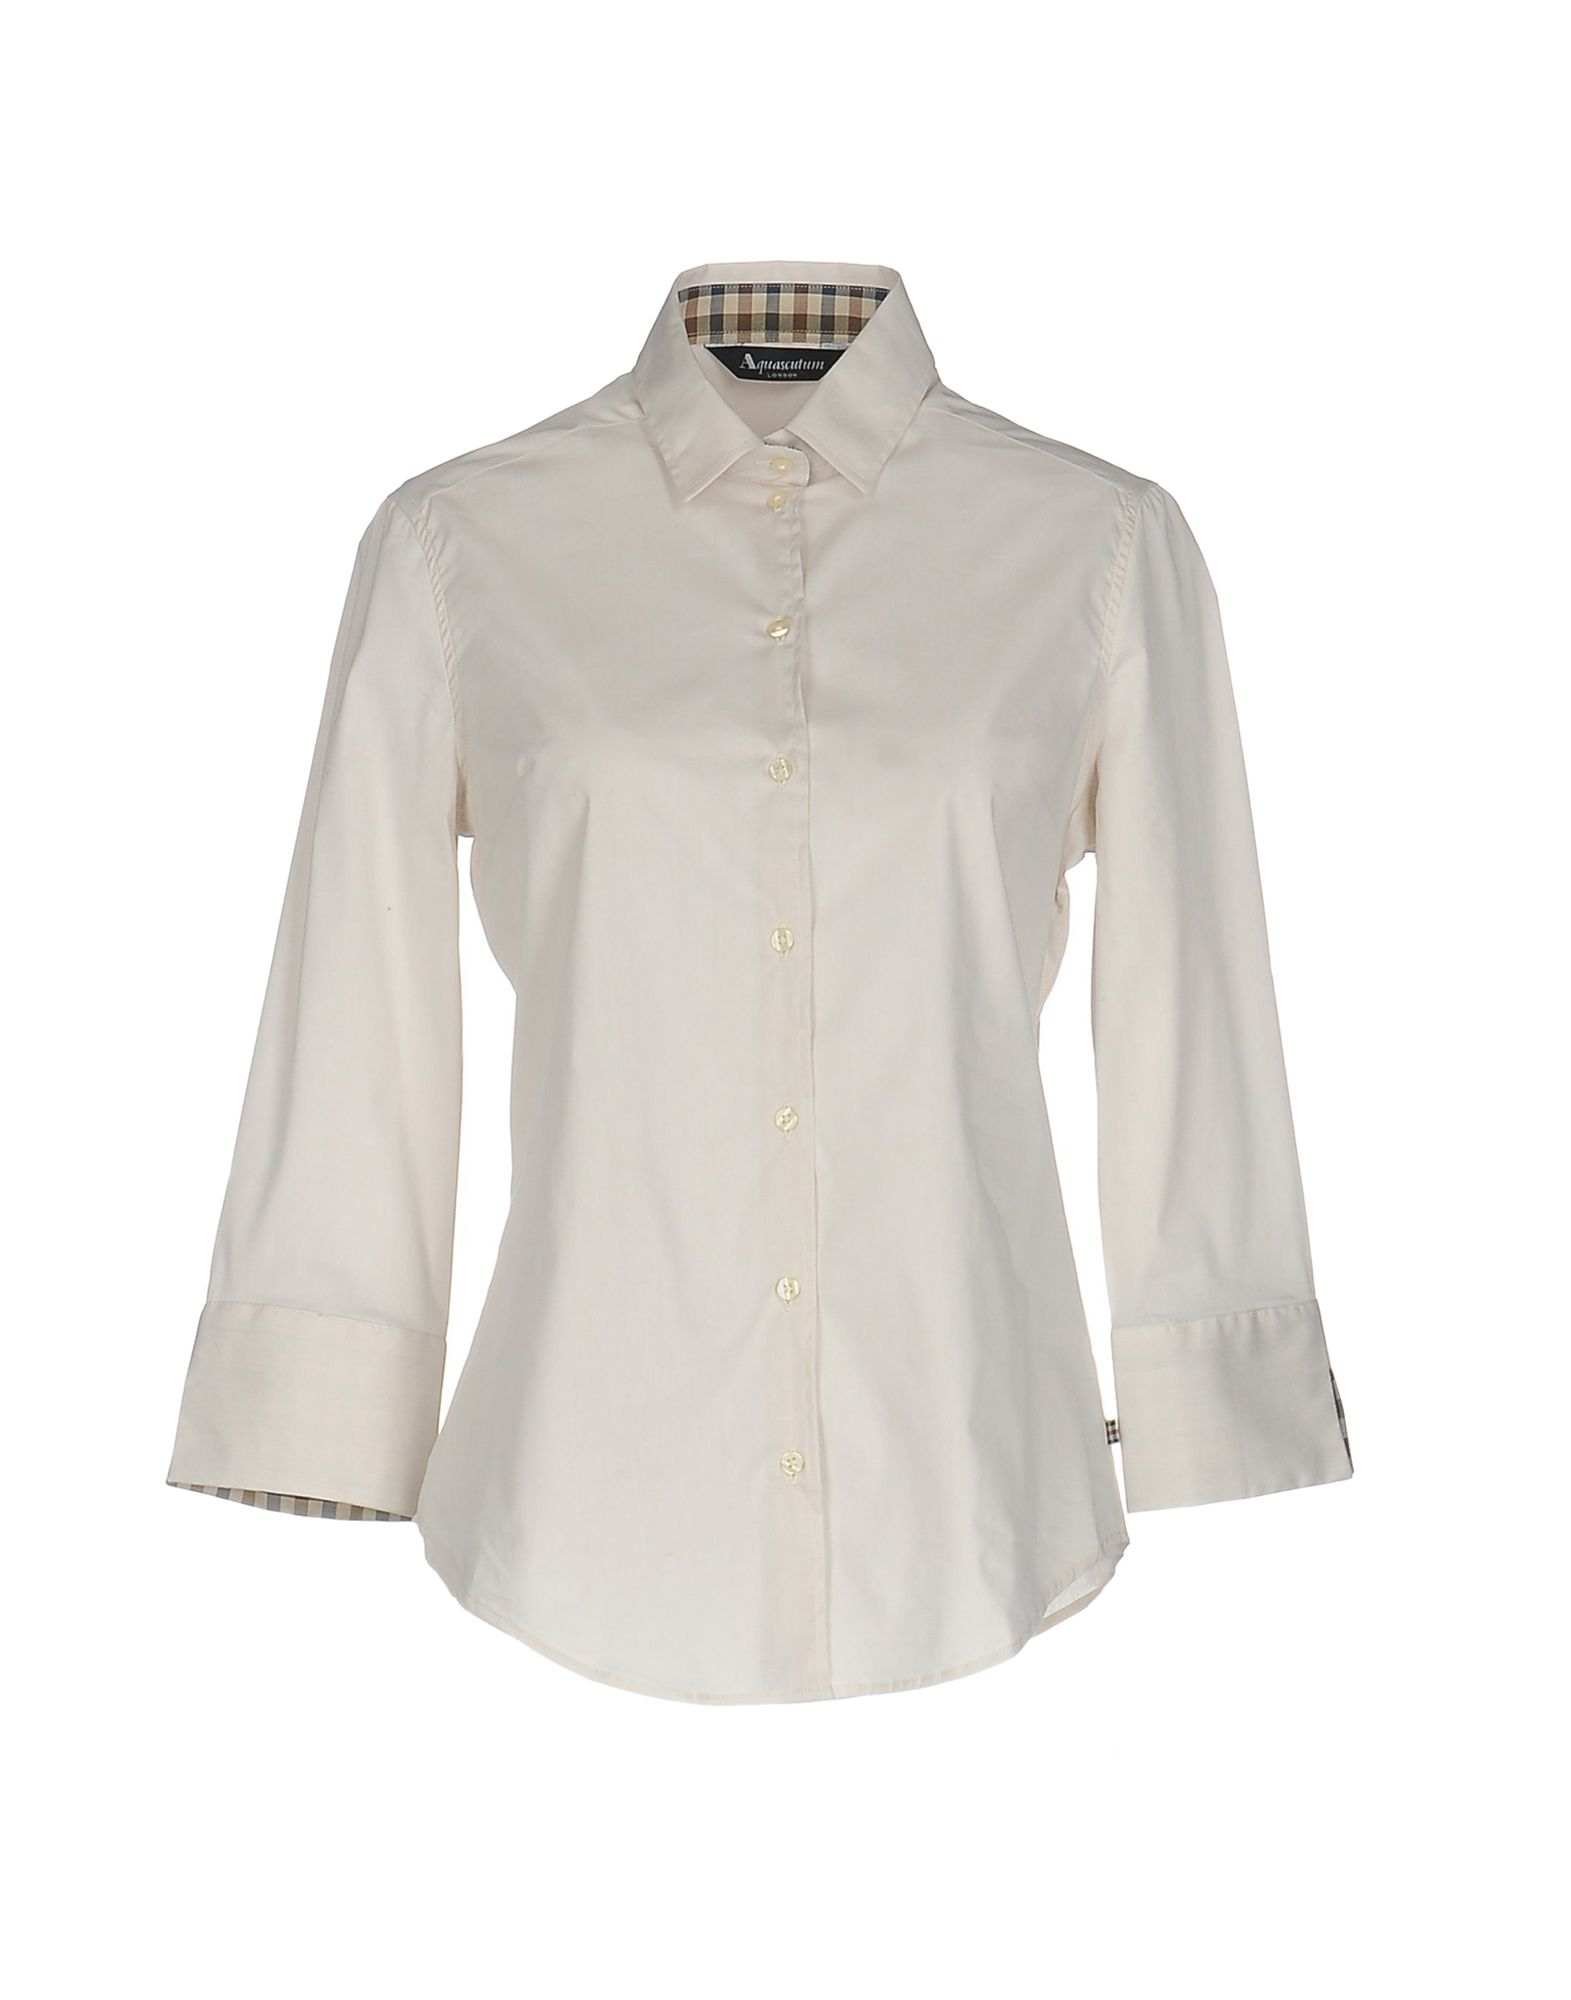 AQUASCUTUM Solid Color Shirts & Blouses in White